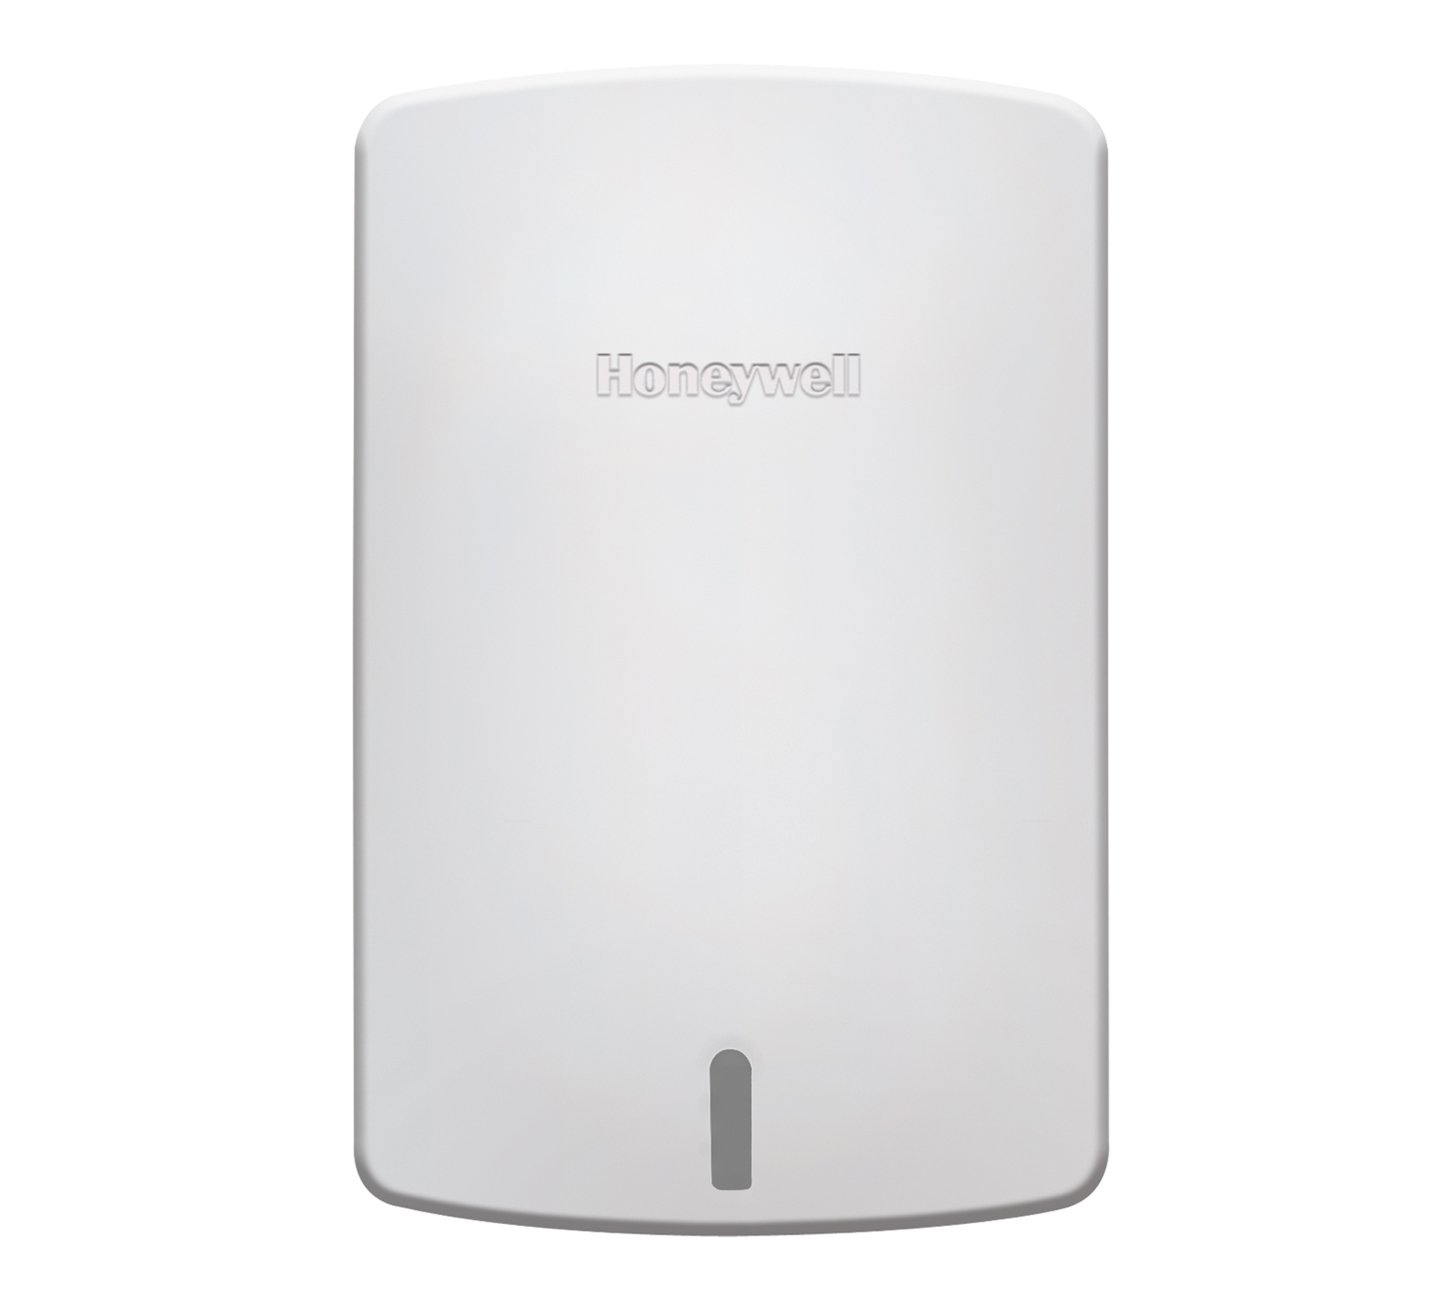 Honeywell C7189r1004 Wireless Indoor Sensor Programmable Household Hgf And Remote Thermostat Thermostats